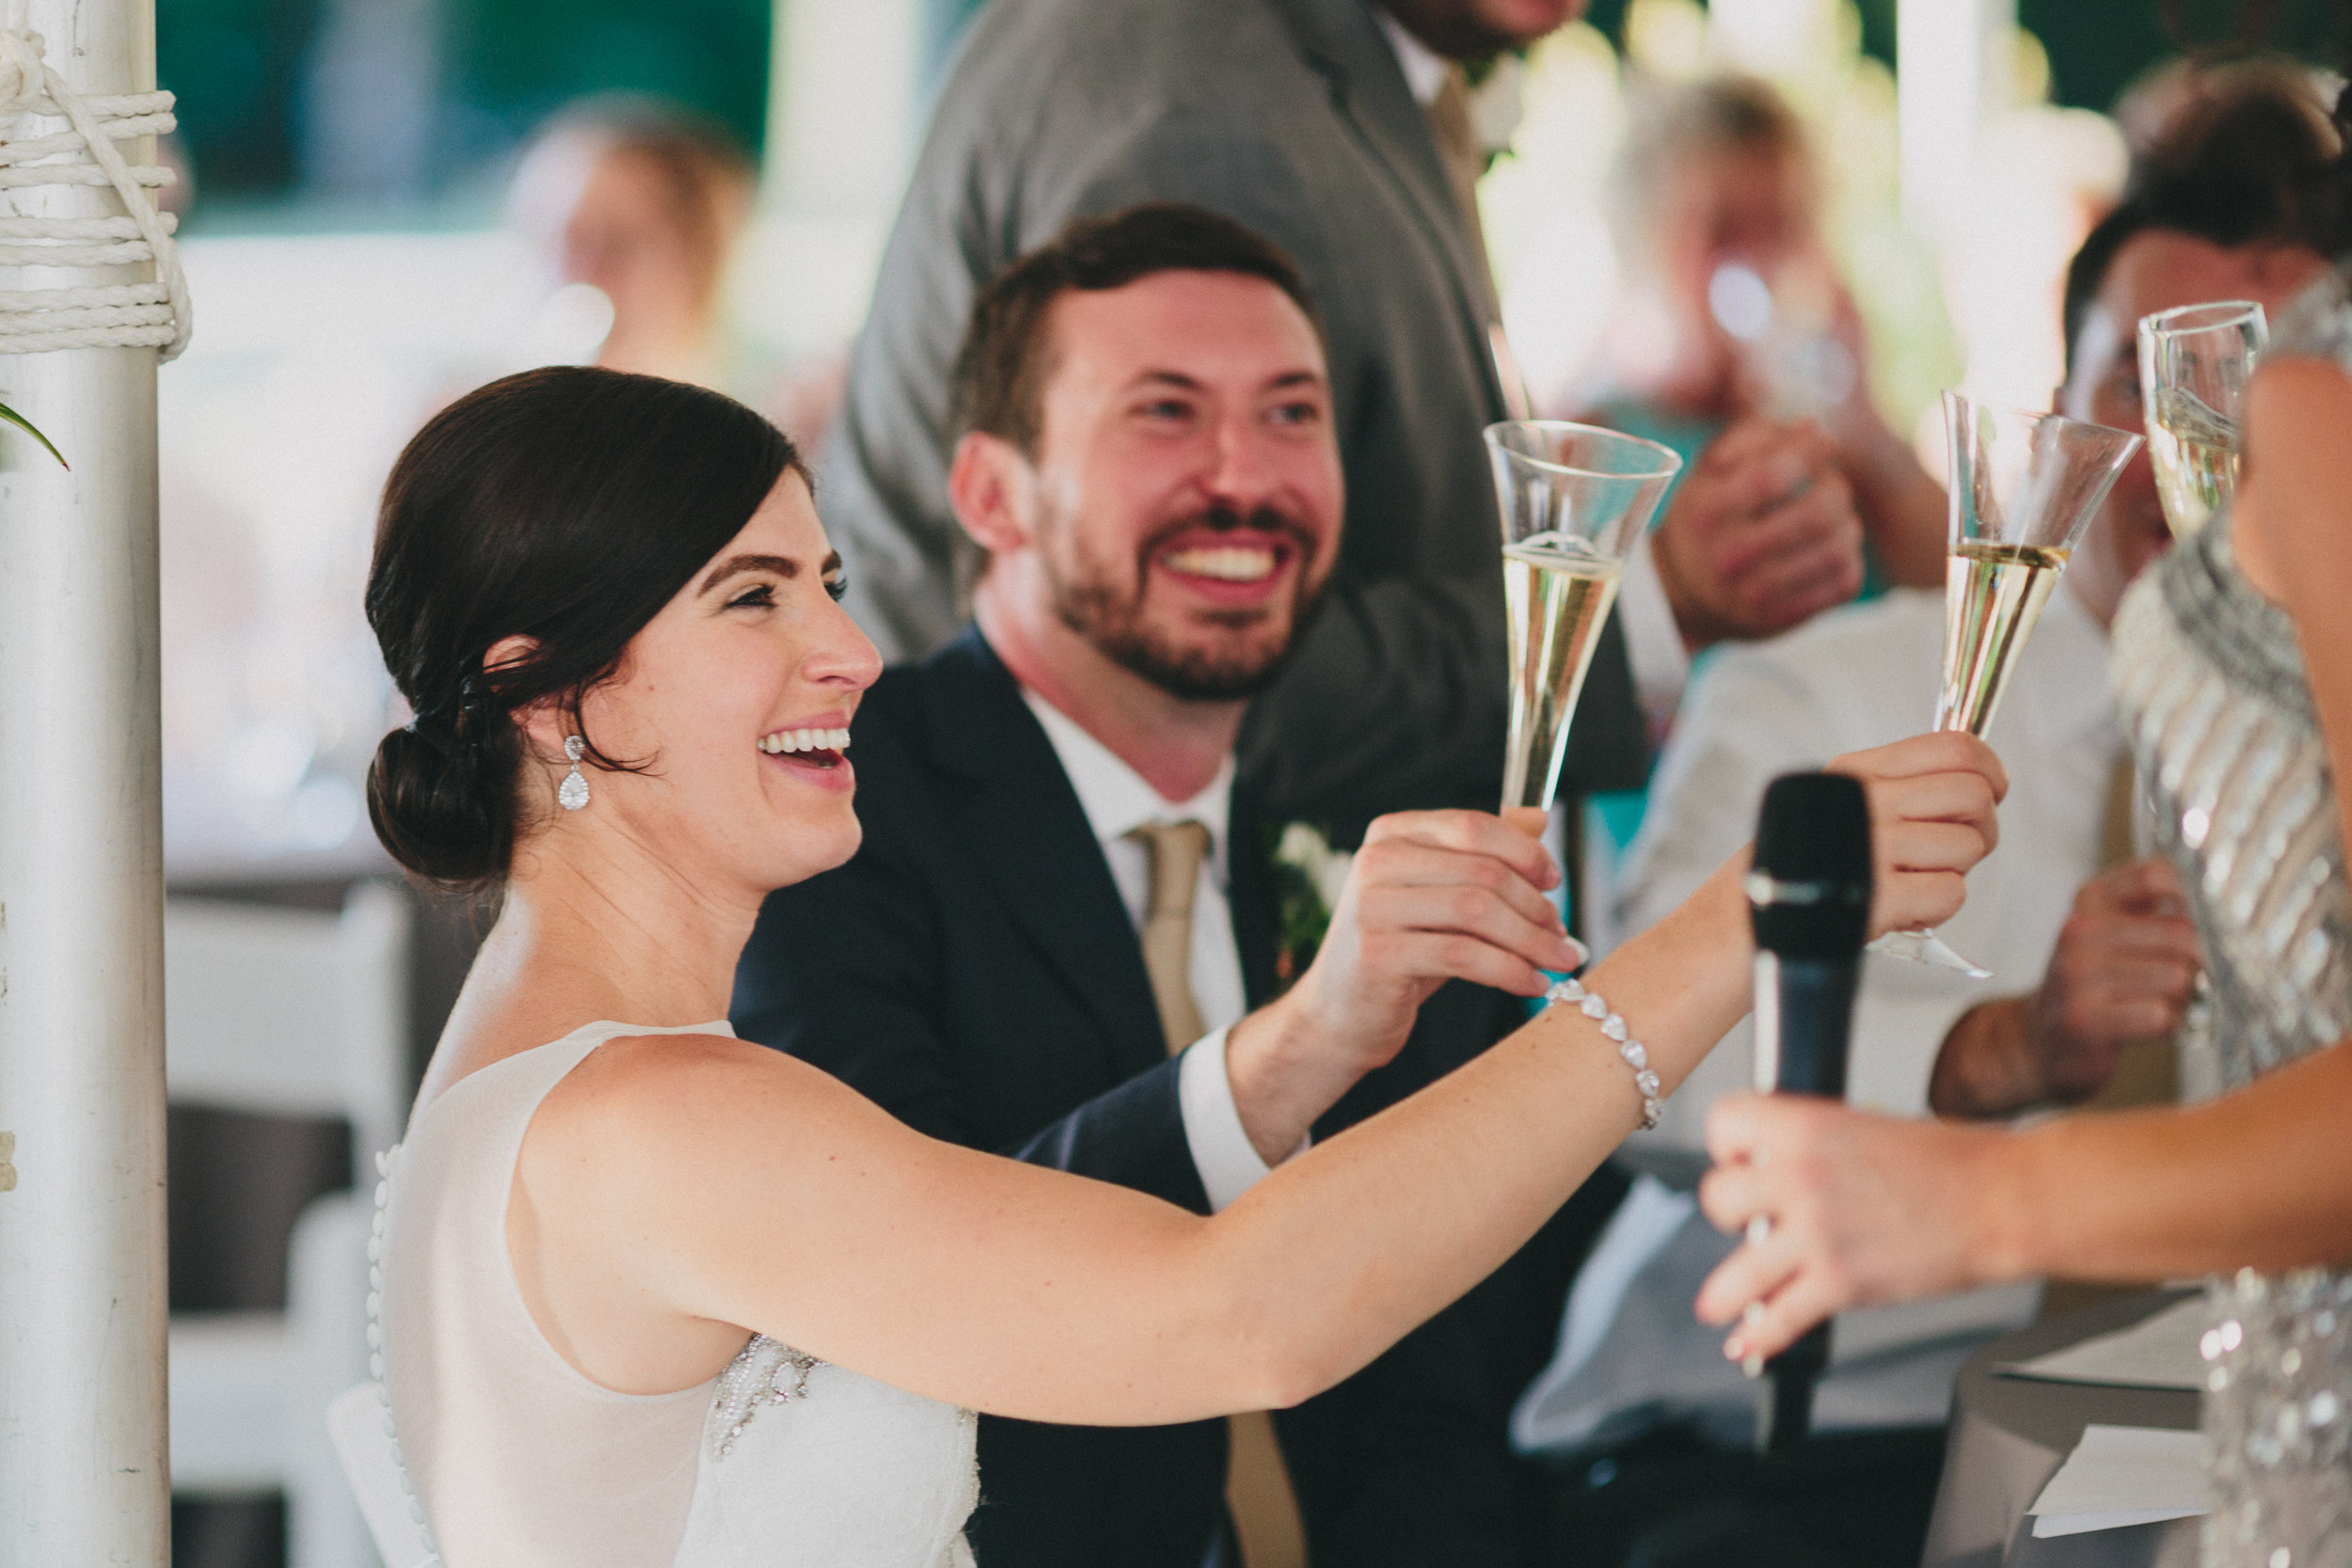 Wedding Toast Tips - Adress the Couple. Social Maven Wedding & Events Planners New York